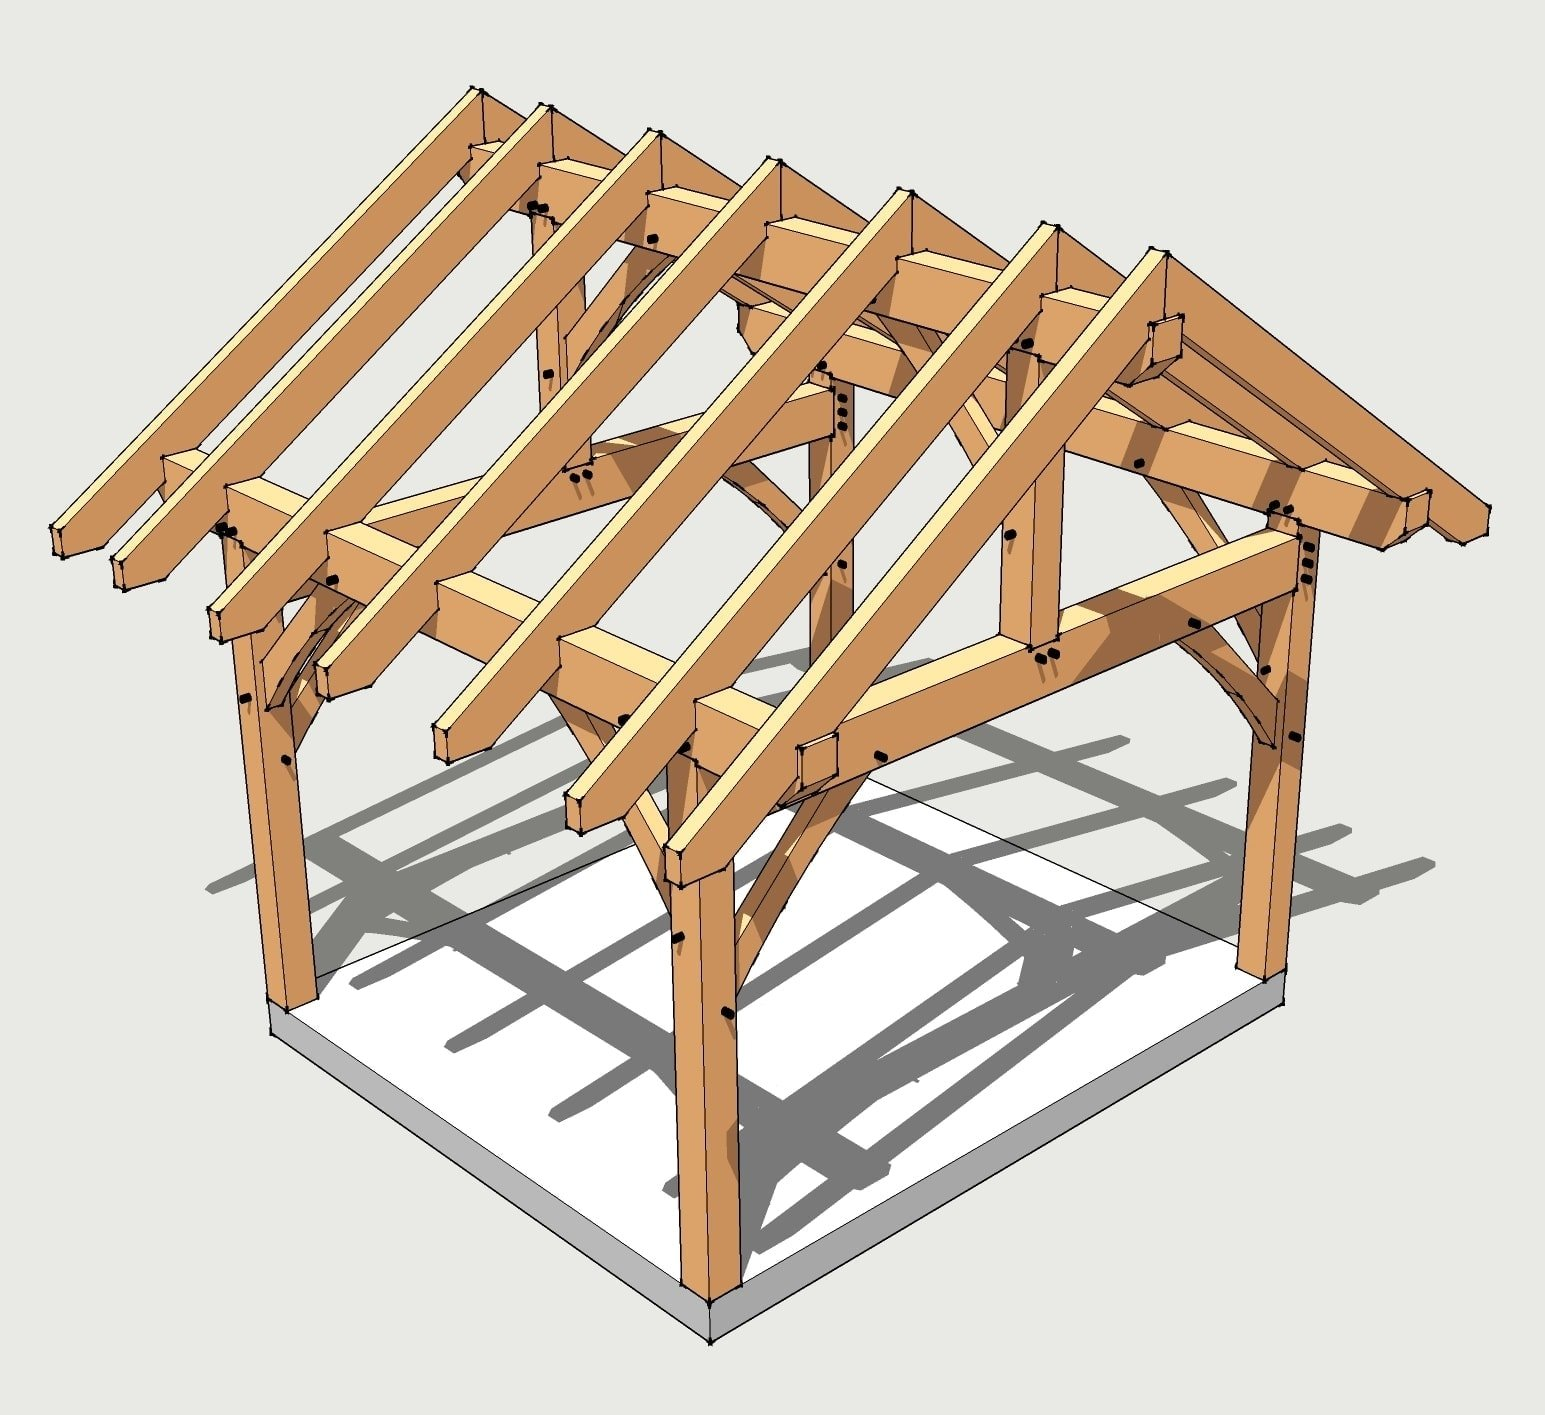 12x14 timber frame plan timber frame hq Simple timber frame house plans